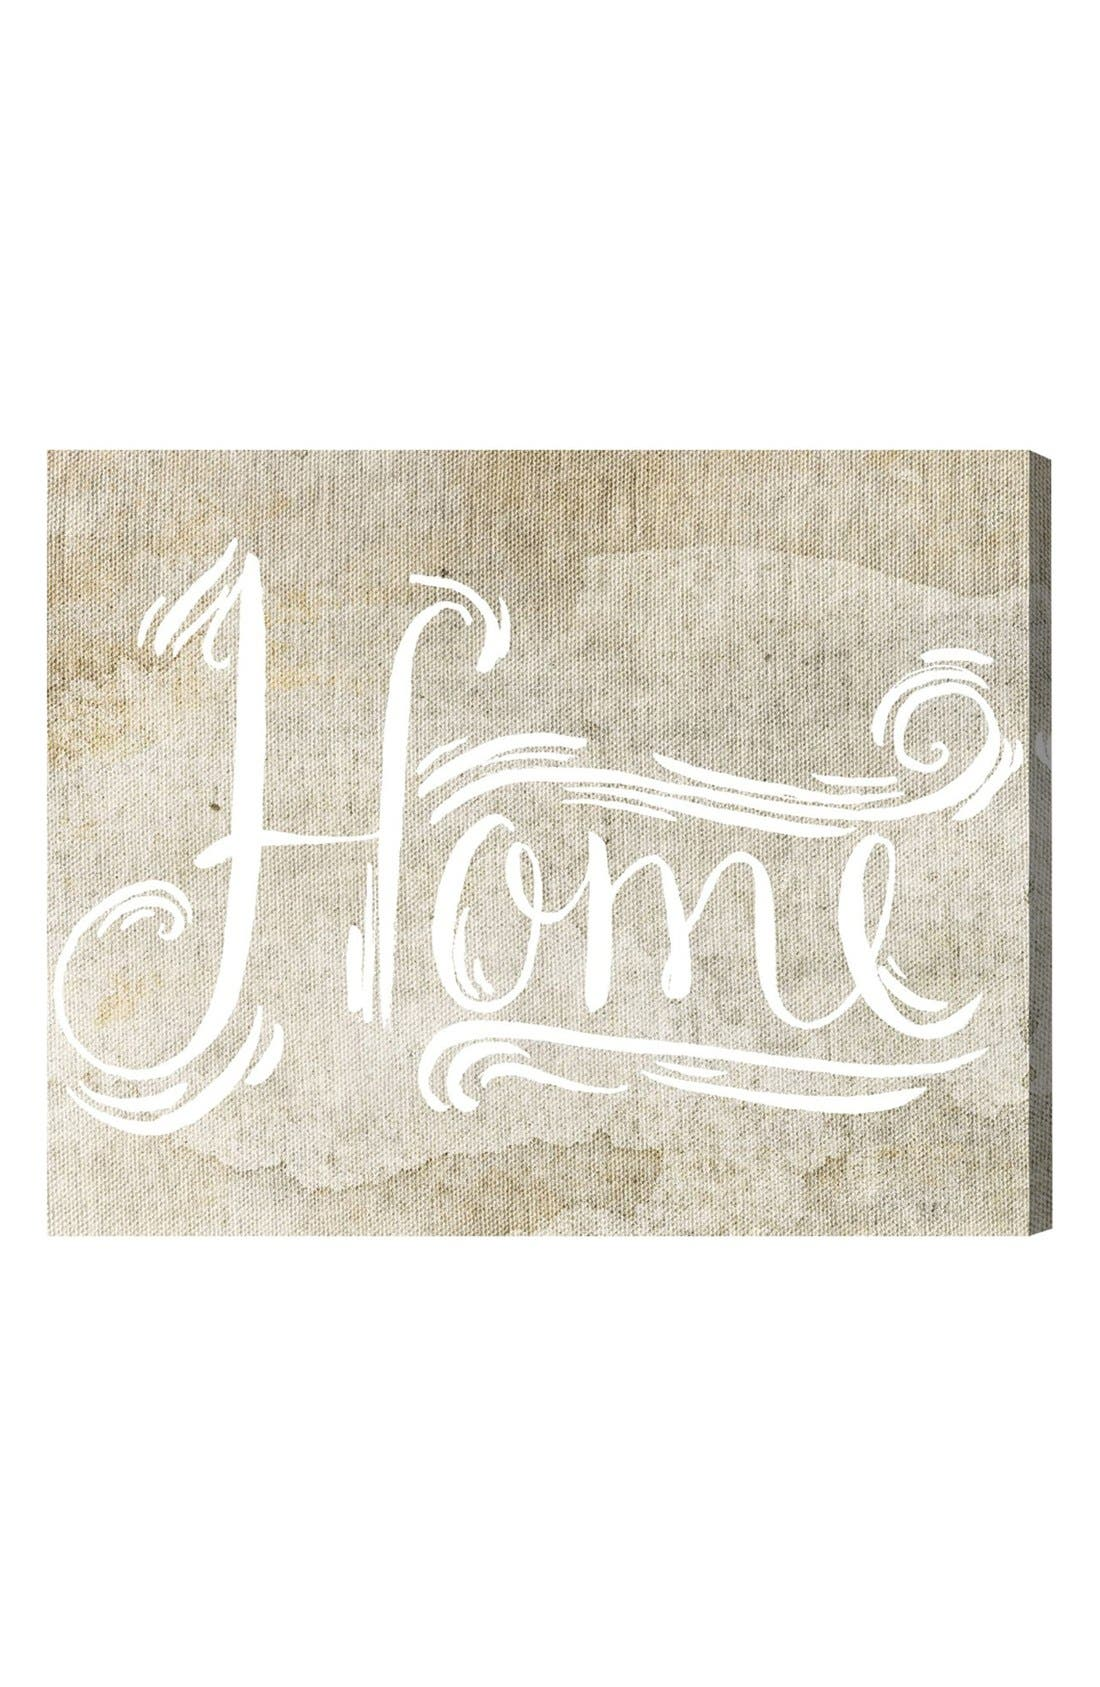 'Home Sweet Home' Hand Stretched Canvas Wall Art,                             Main thumbnail 1, color,                             Beige